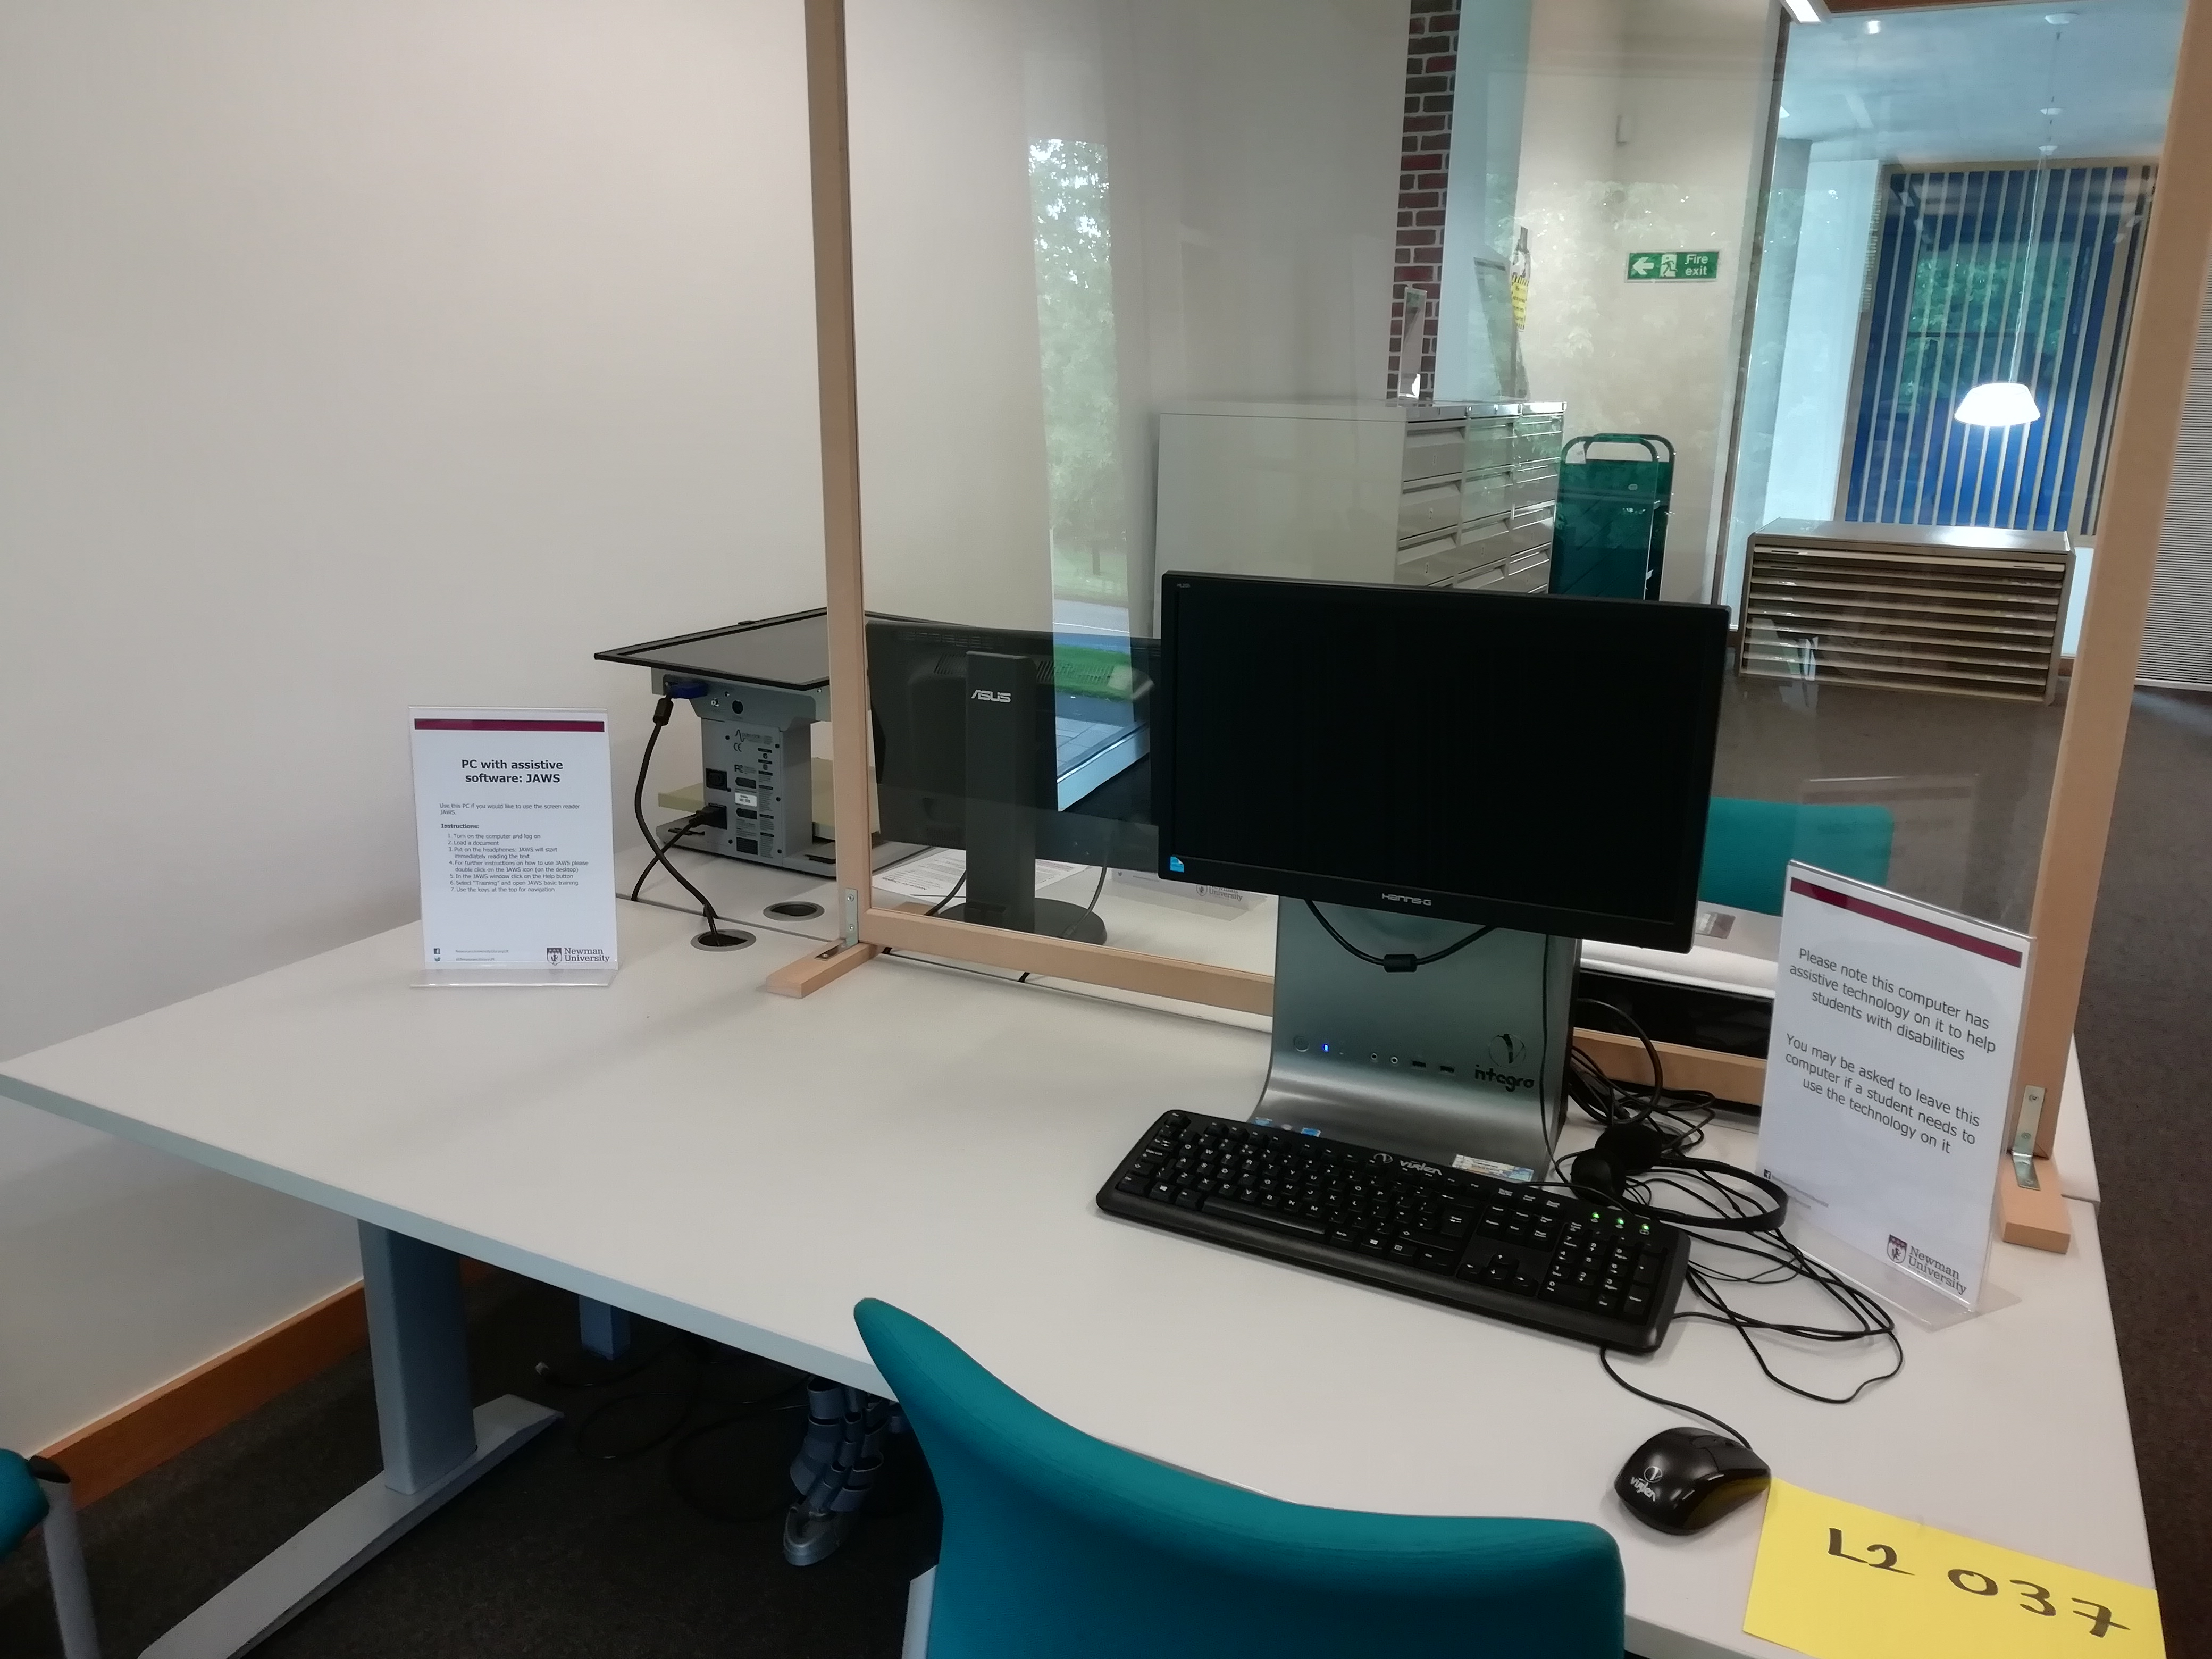 Example of individual study space with height-adjustable desk and computer